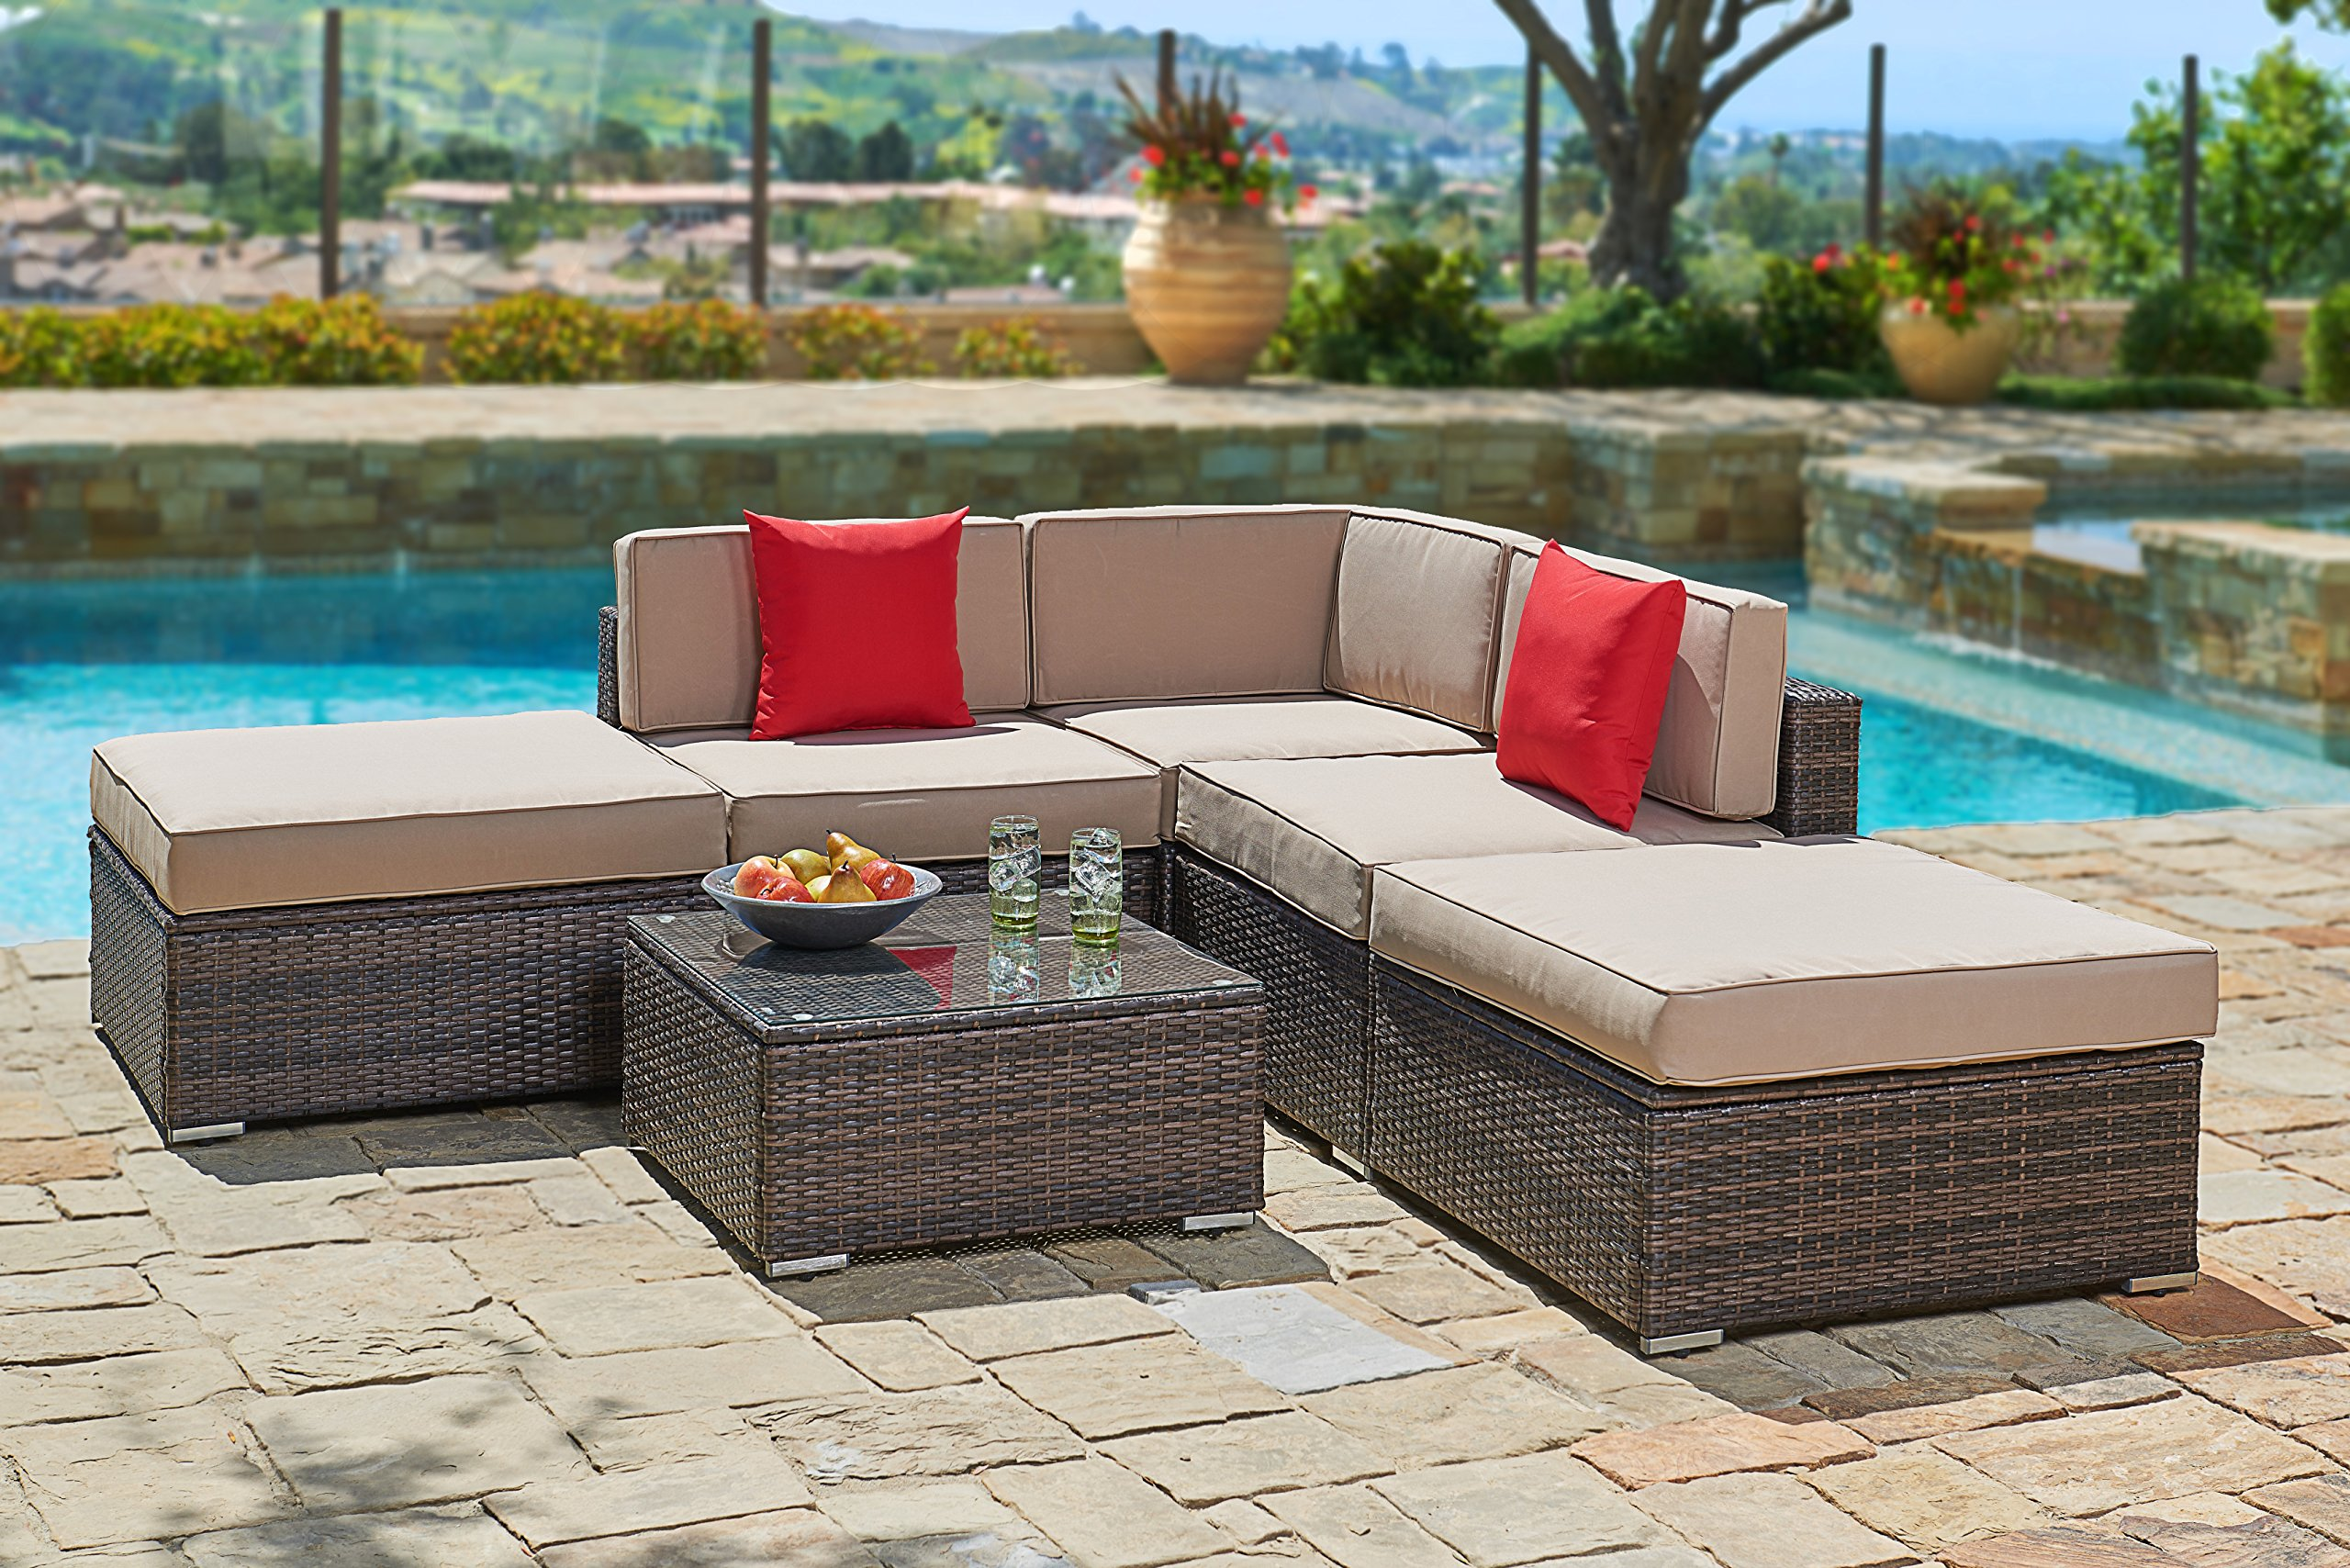 Suncrown Outdoor Furniture Sectional Sofa Set (6-Piece Set) All-Weather Brown Wicker with Brown Washable Seat Cushions & Modern Glass Coffee Table | Patio, Backyard, Pool | Incl. Waterproof Cover